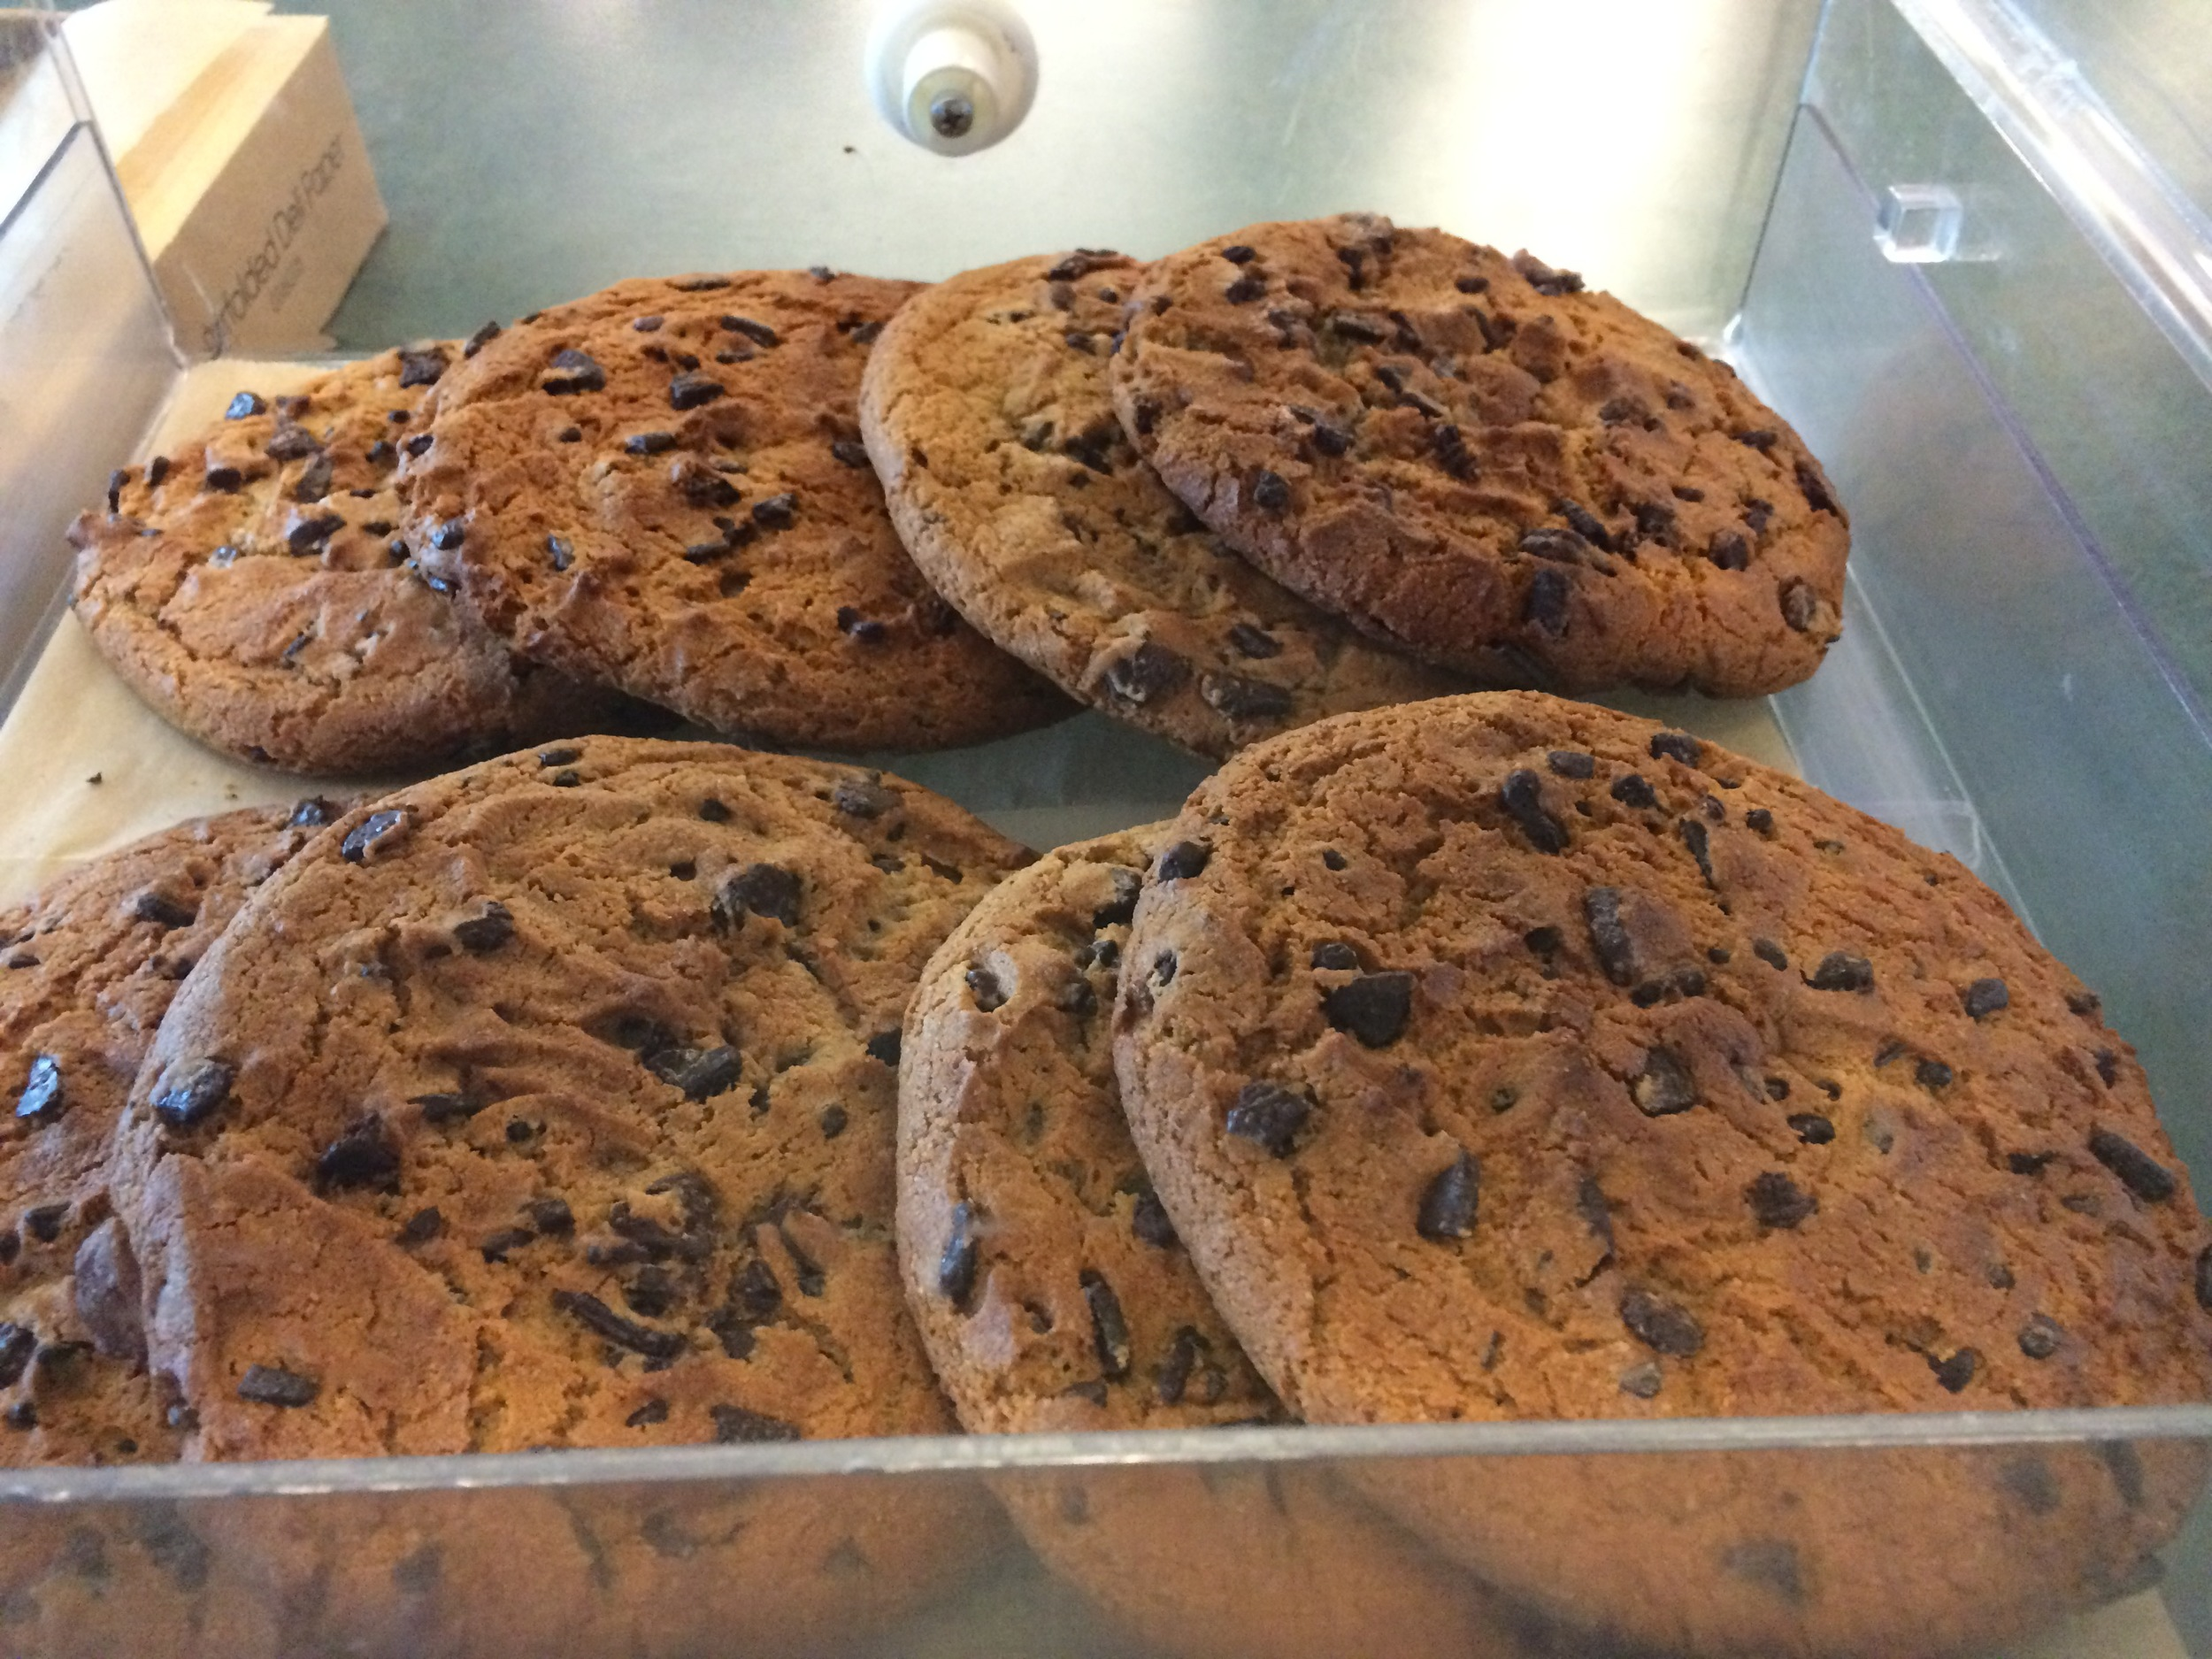 Oversized, jumbo chocolate chip cookies available for $4.